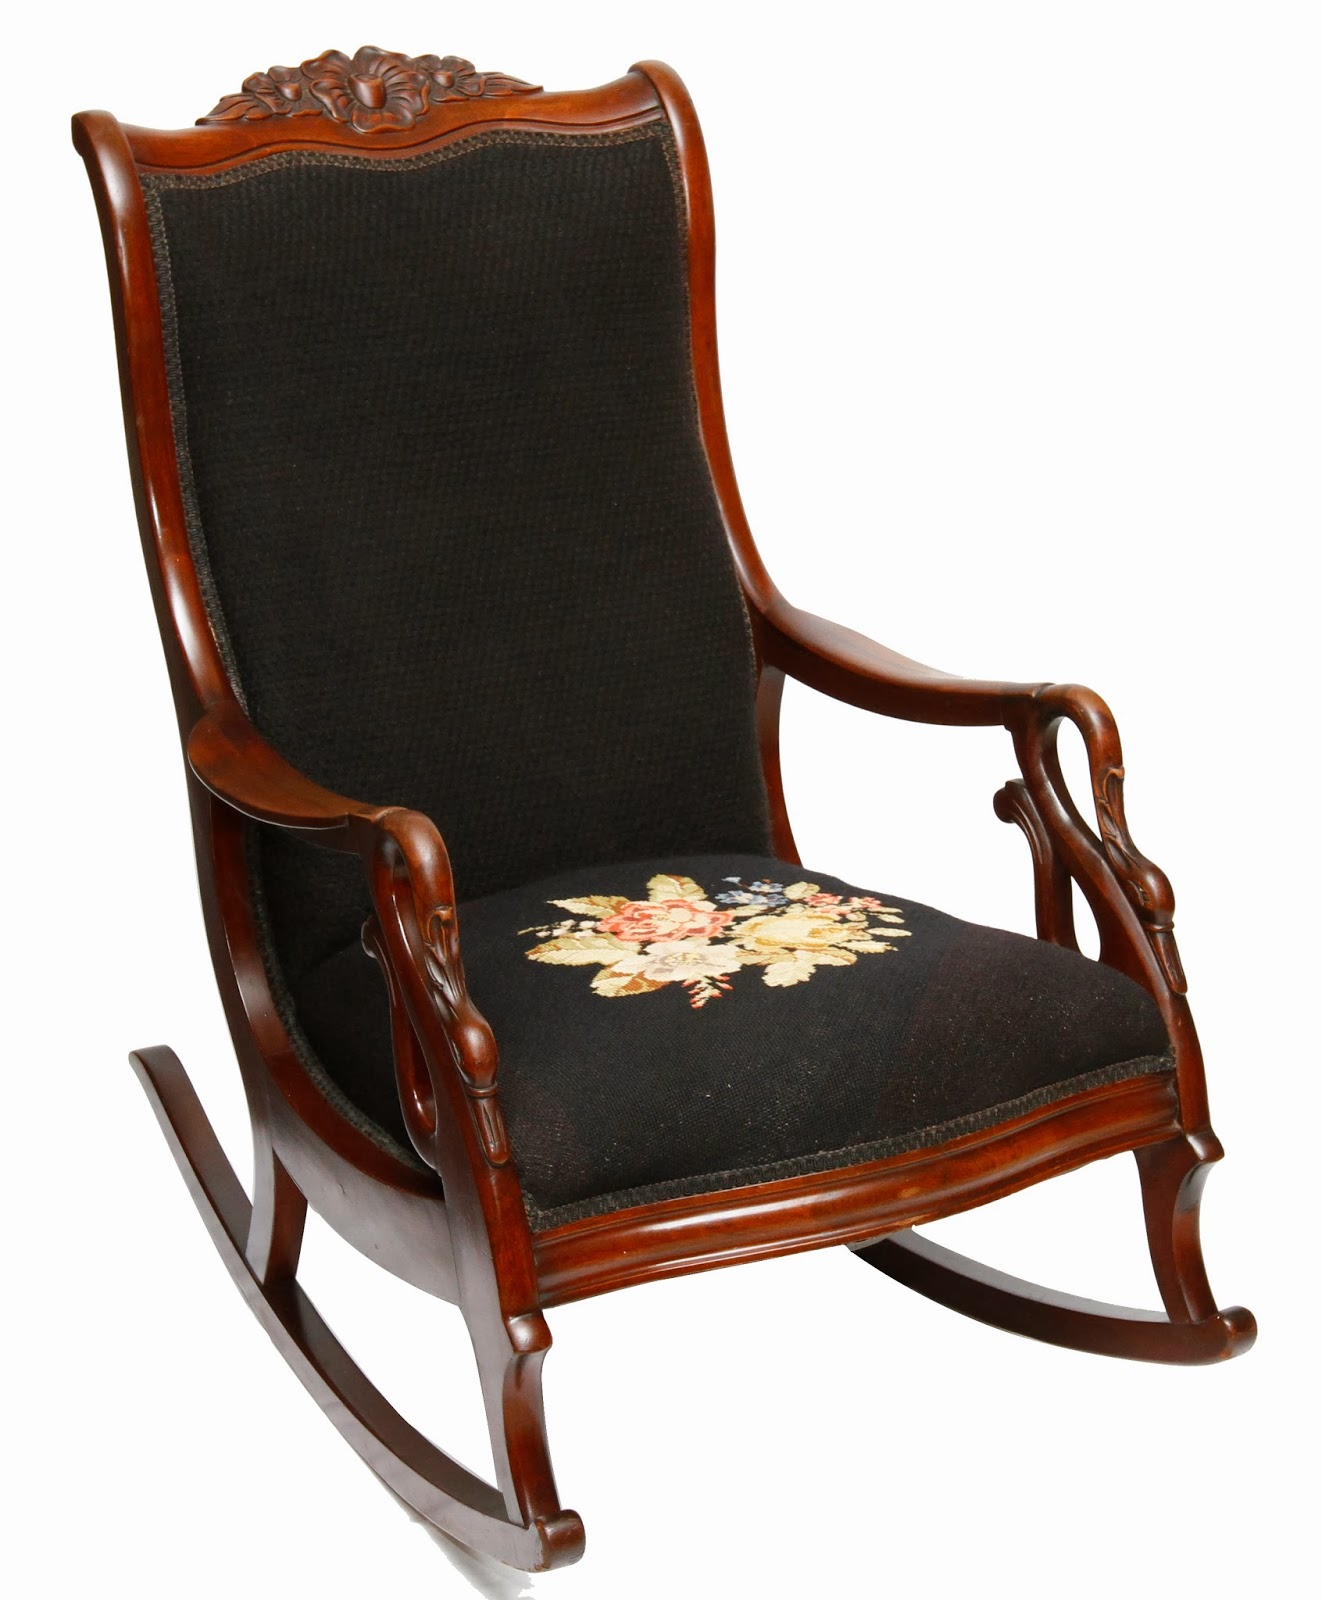 Antique Gooseneck Carved Rocking Chair with Needlepoint Upholstery - Antique Gooseneck Carved Rocking Chair With Needlepoint Upholstery